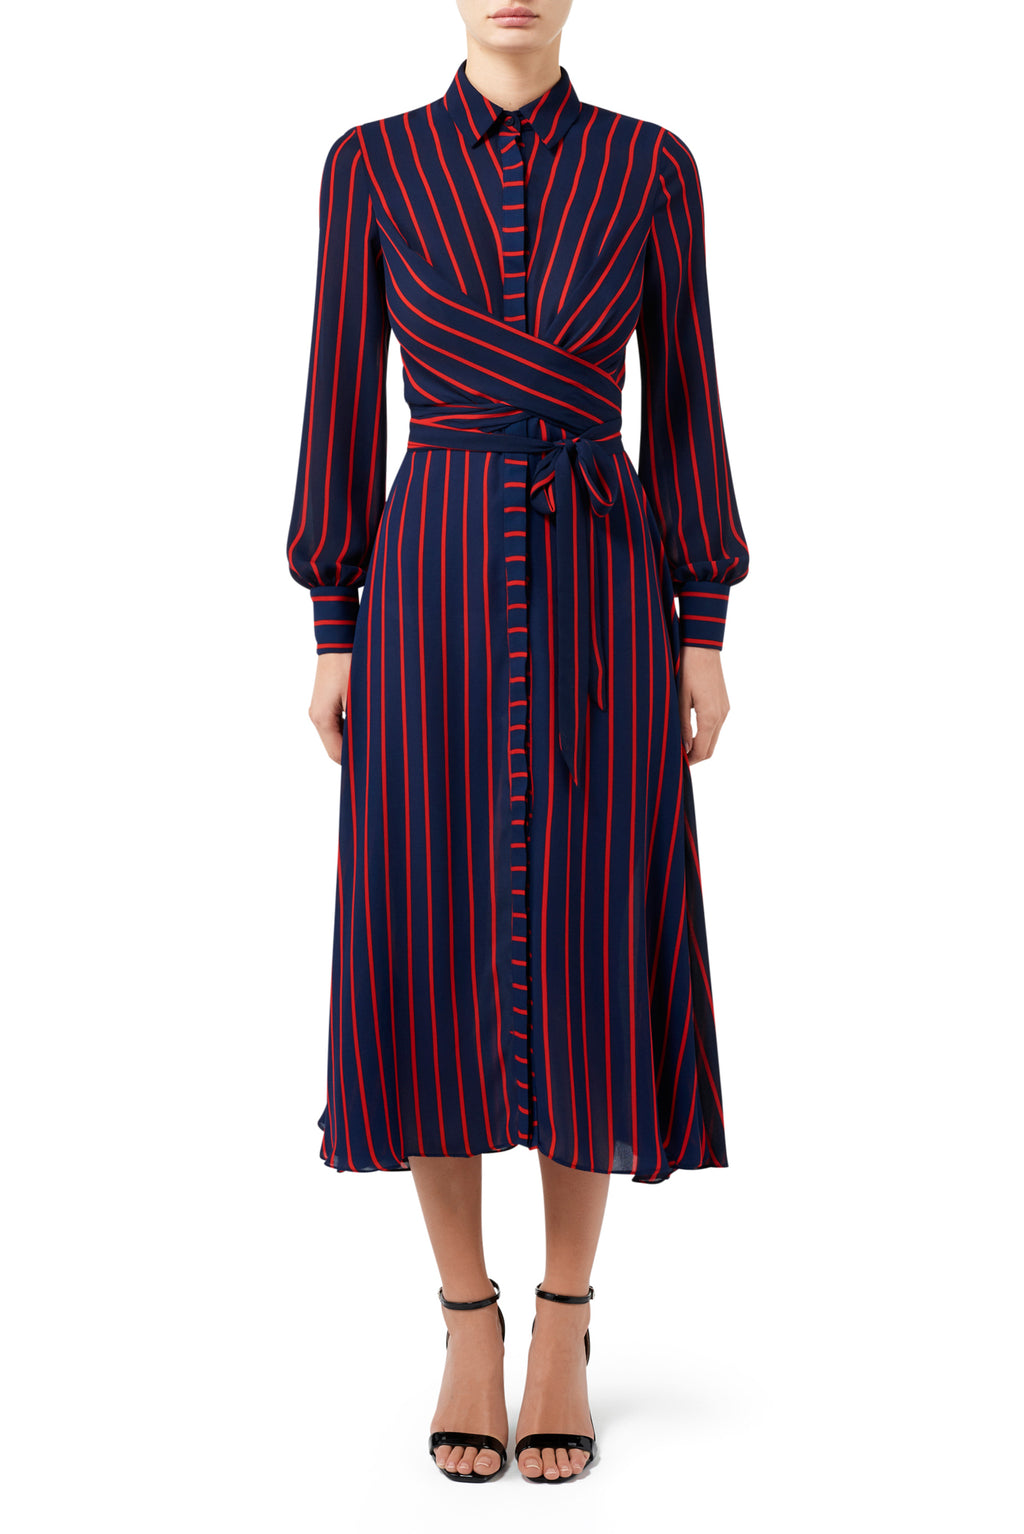 The Athenian Shirt Dress - Stripe